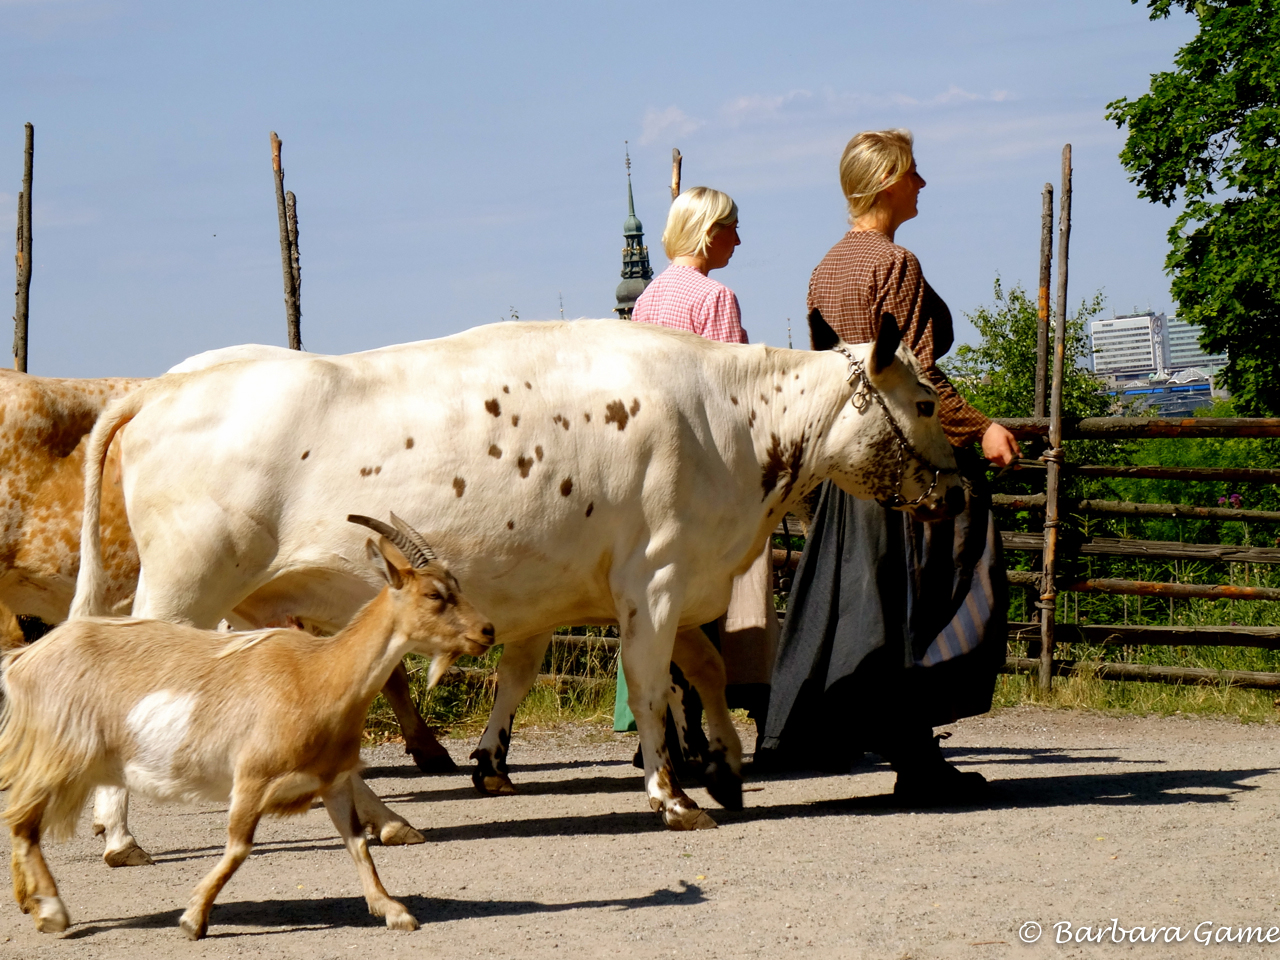 Leading the cows to pasture